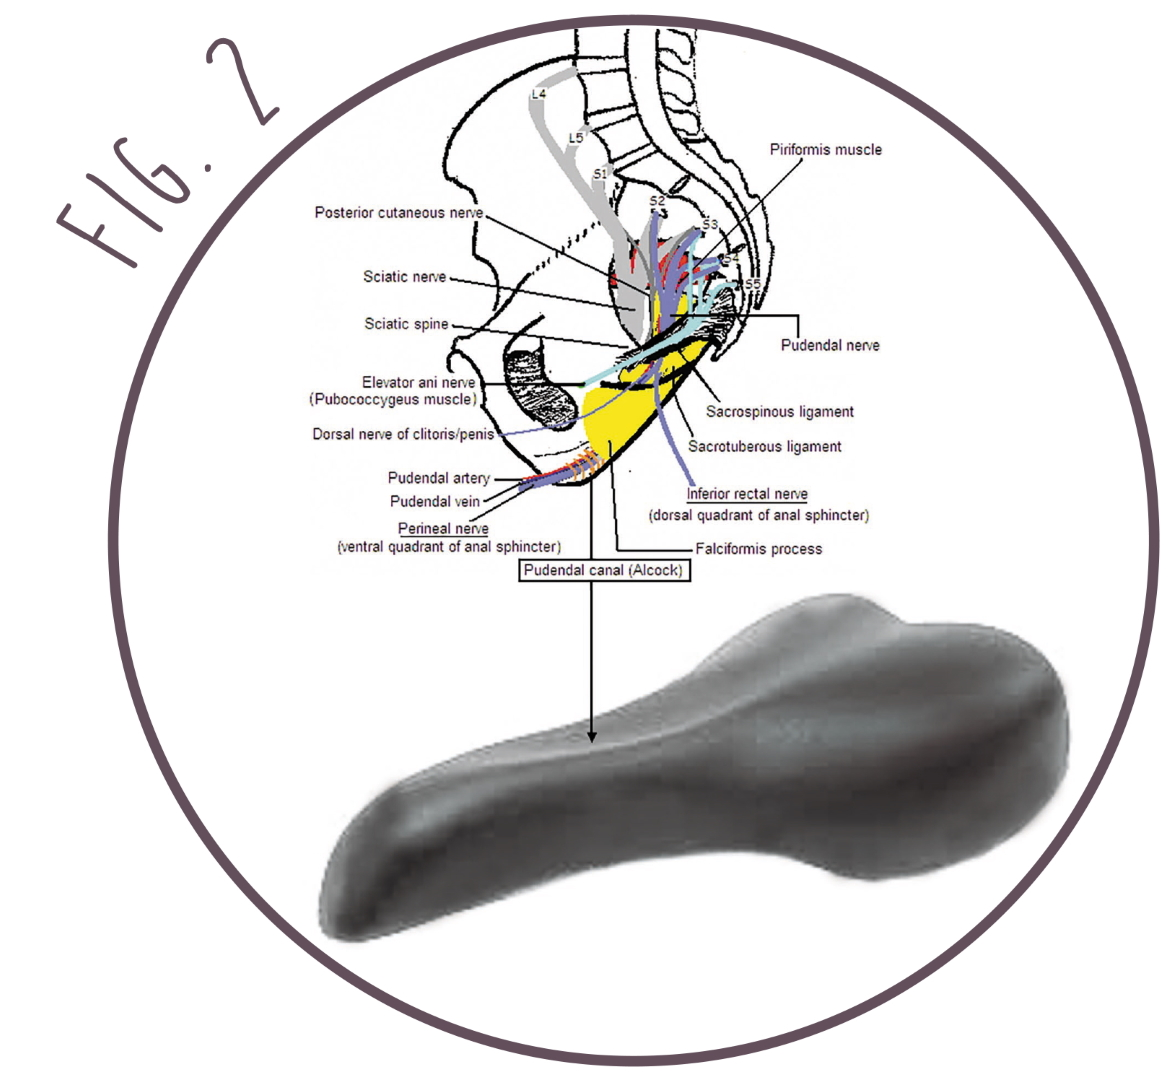 Traditional bicycle saddle - cyclist and cycling - sciatic nerve and perineal nerve - pudendal nerve and alcock canal